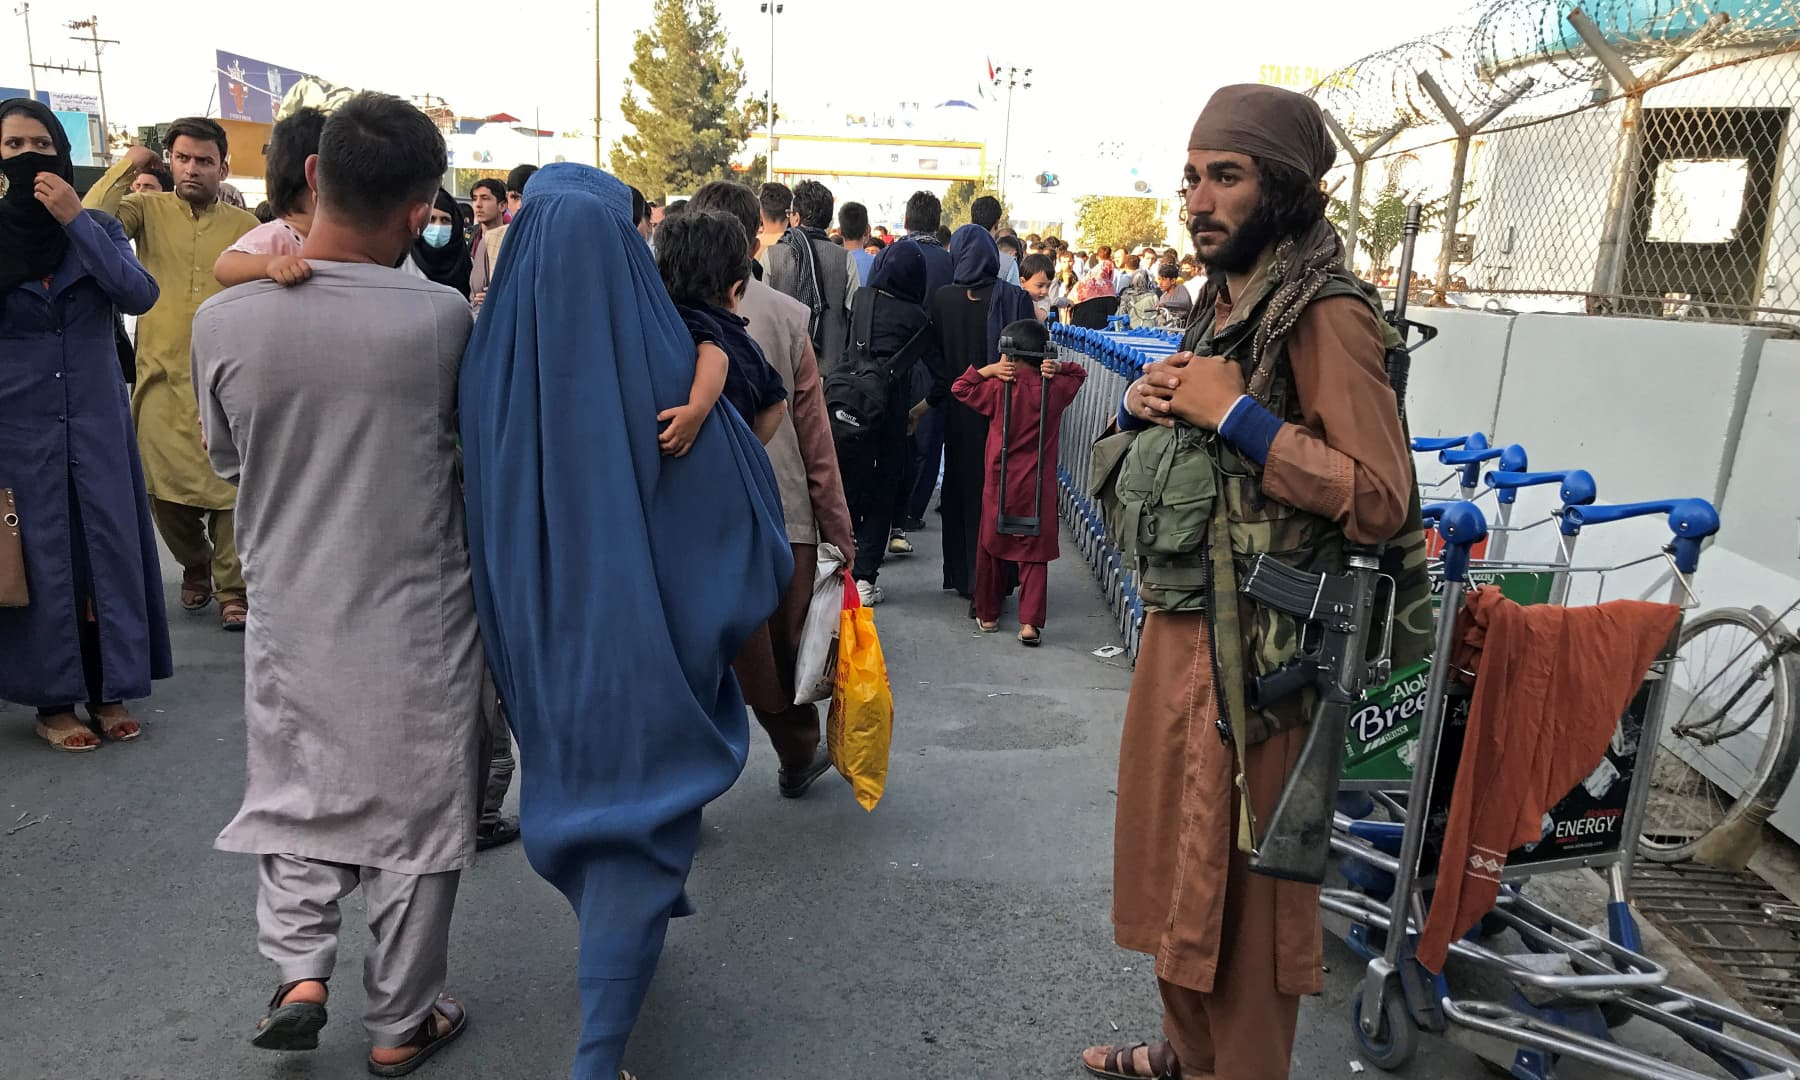 A member of the Taliban stands guard as people walk at the entrance gate of Hamid Karzai International Airport in Kabul, Afghanistan on August 16, 2021. — Reuters